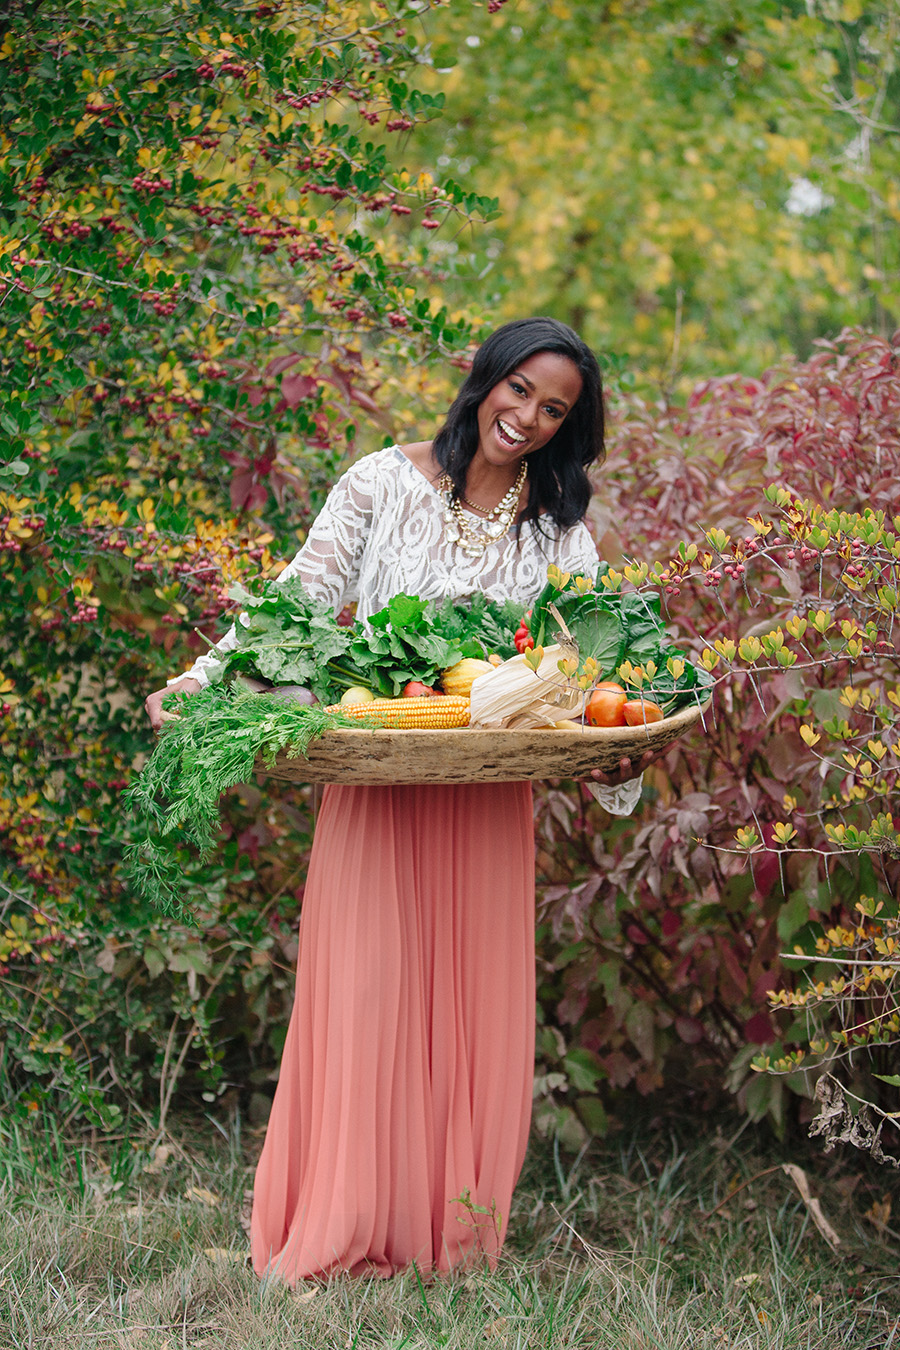 Another shoot I get asked about often.  This was just a few shrubs in the median of a parking lot on the industrial side of Longmont.  The vibrant colors of the foliage echoed the colors of the produce in her basket, and made her coral skirt stand out.  I'm standing on the curb.